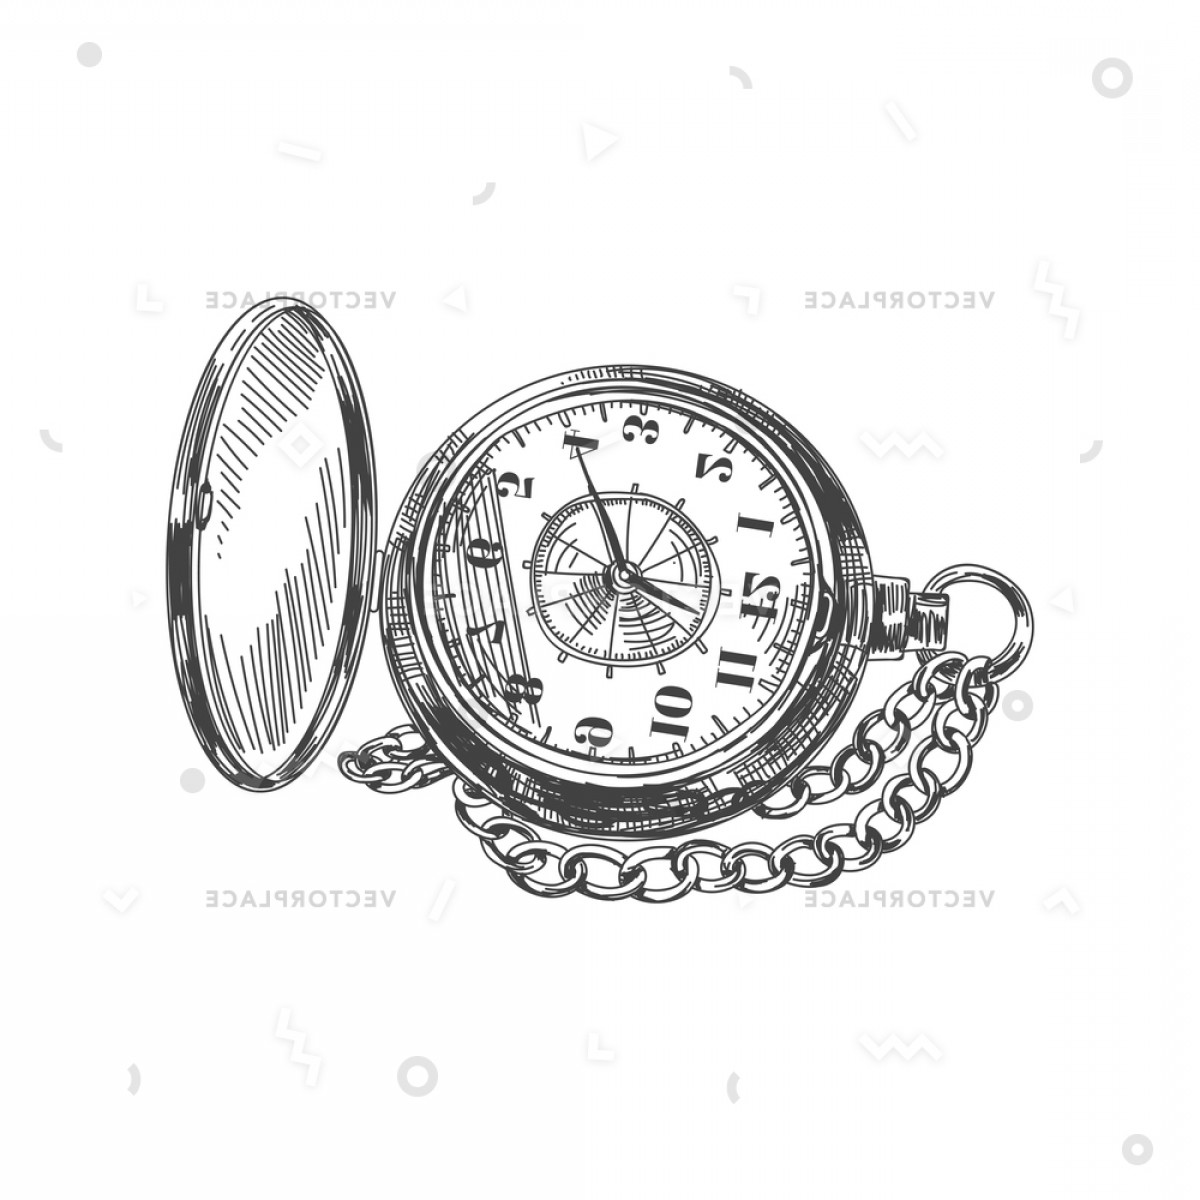 Stop Watch Vector Ai File: Beautiful Hand Drawn Vintage Pocket Watch Vector Illustration